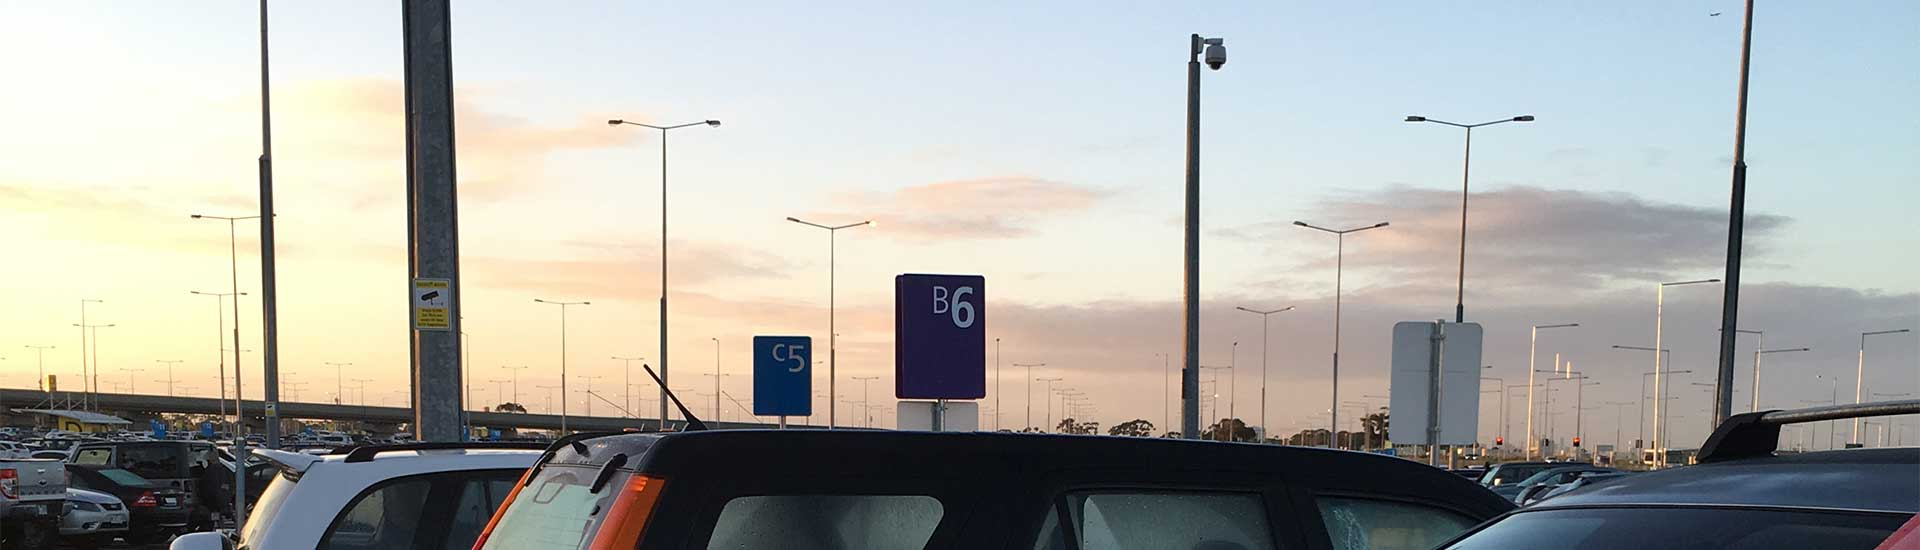 Photo of where we parked at Melbourne Airport Car Park